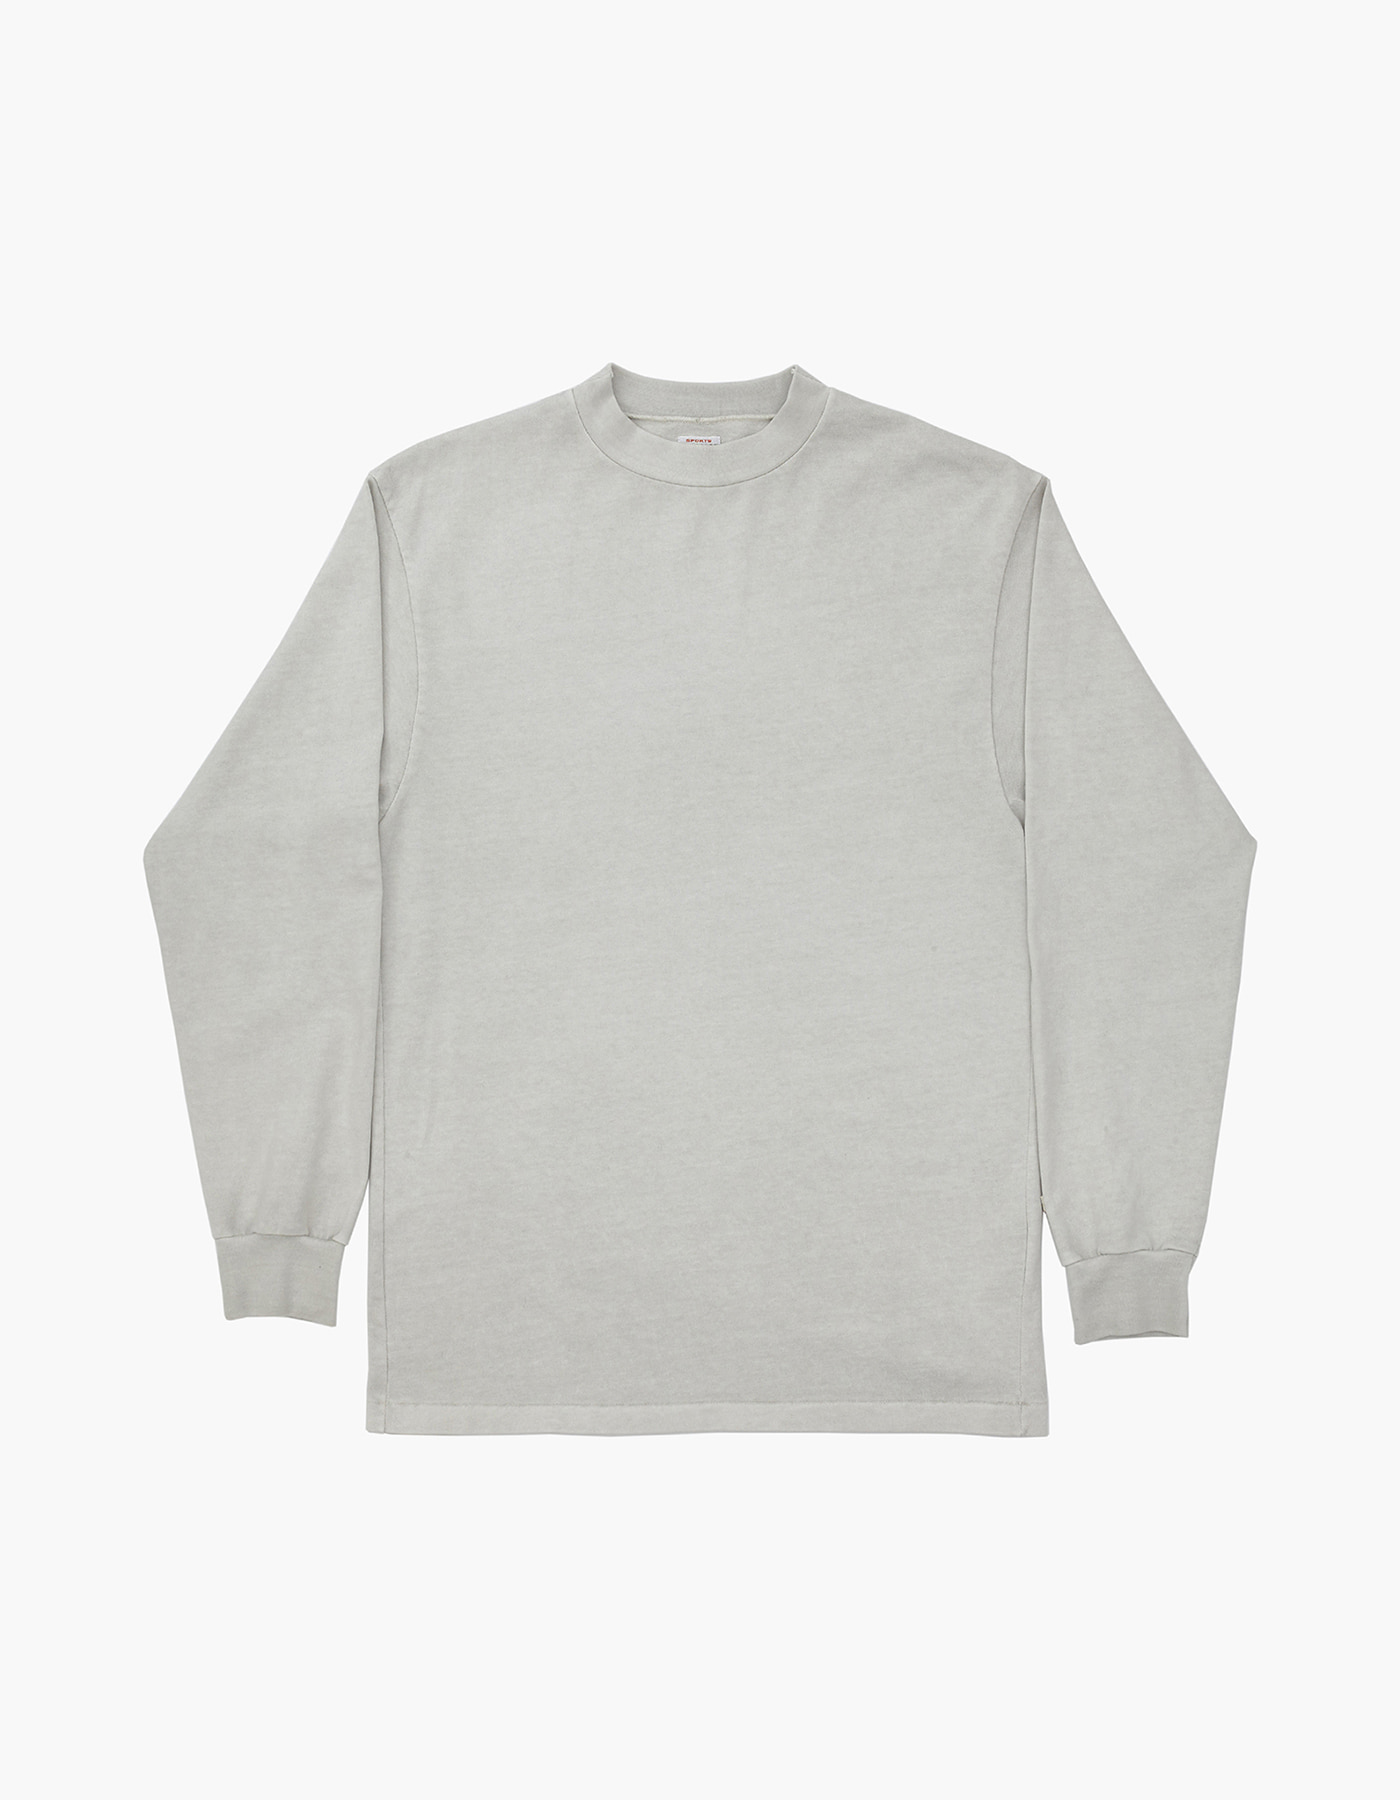 10S COMPACT YARN MOC-NECK / LIGHT GREY